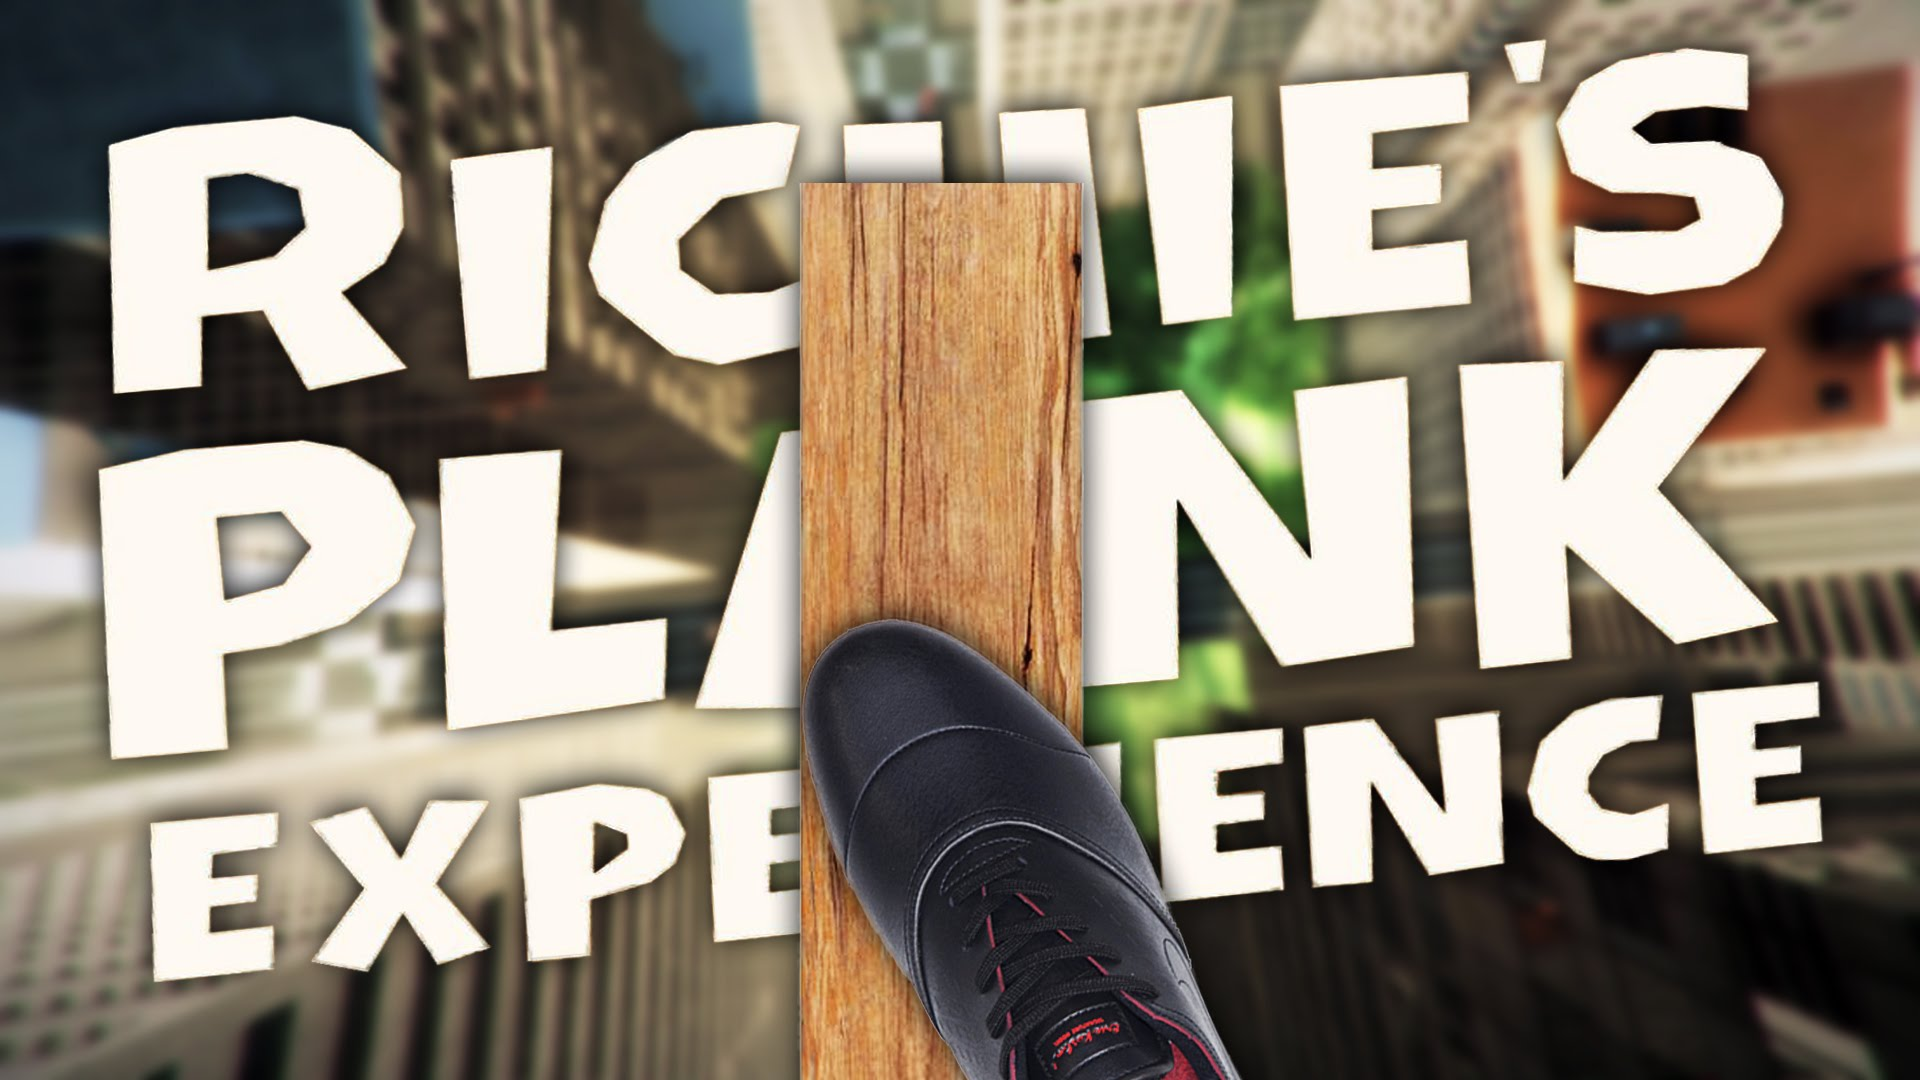 Richies plank expeirence